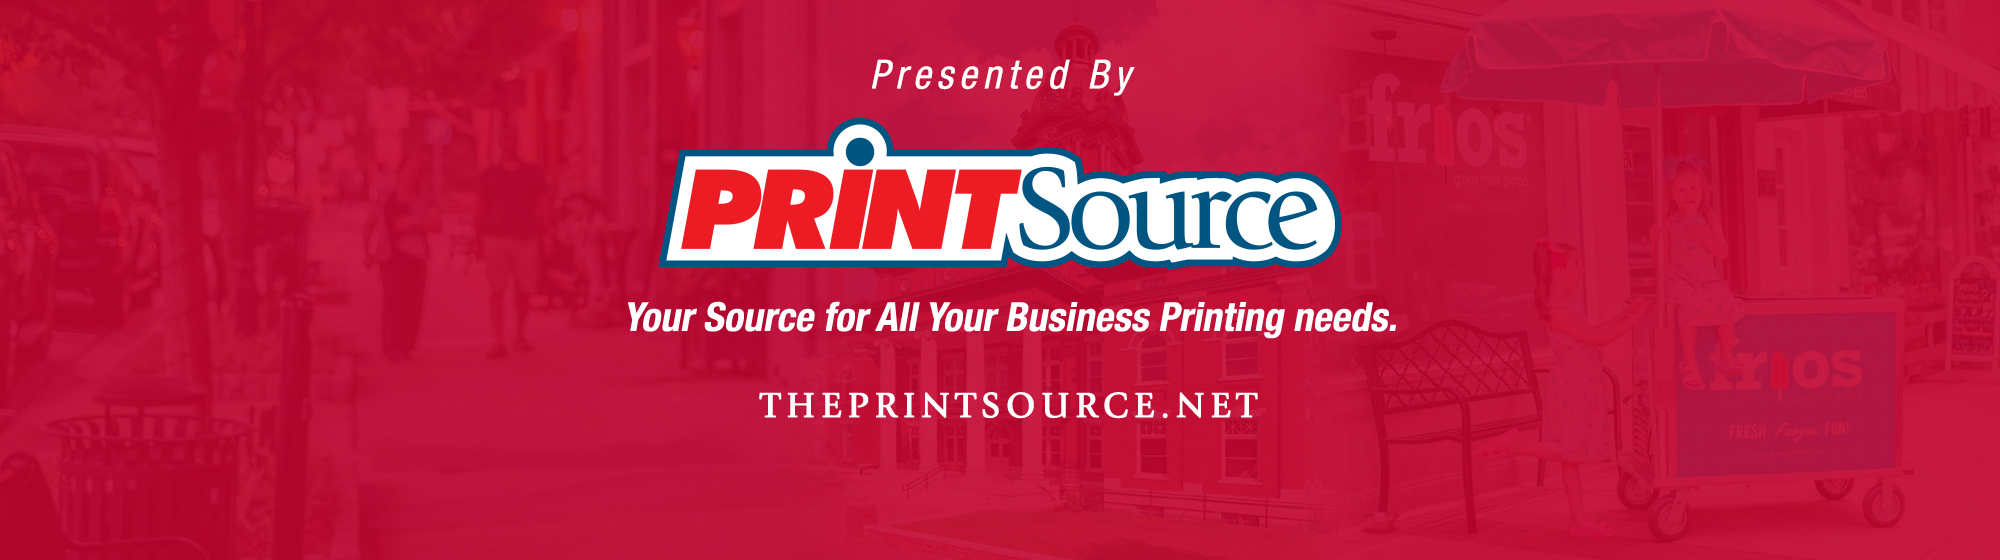 Coweta Signs | Presented by PrintSource